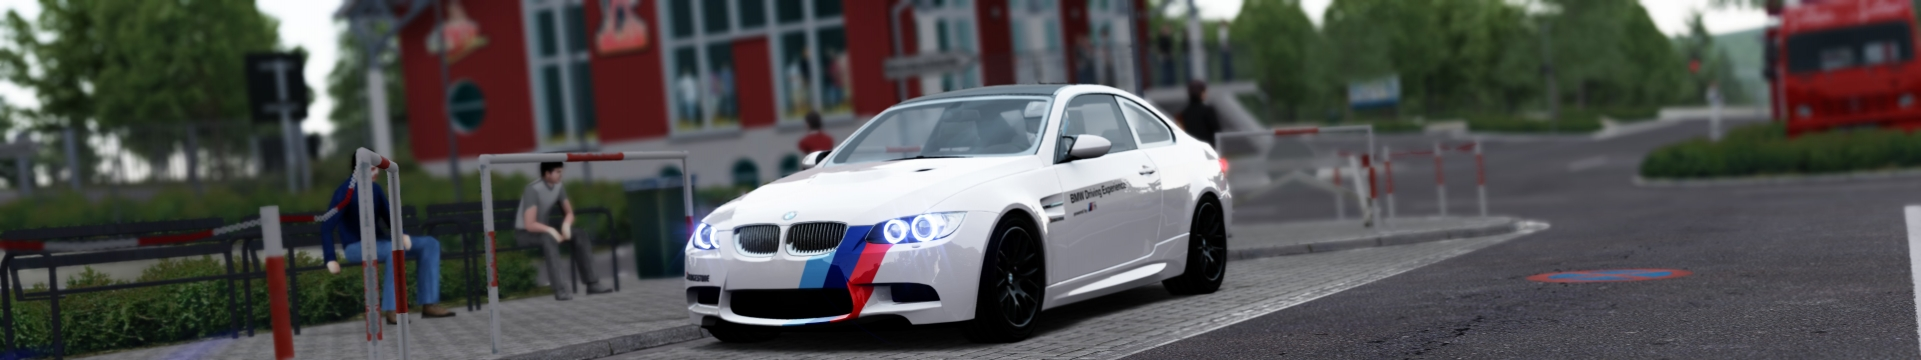 Assetto Corsa - M3 @ 'Ring #1